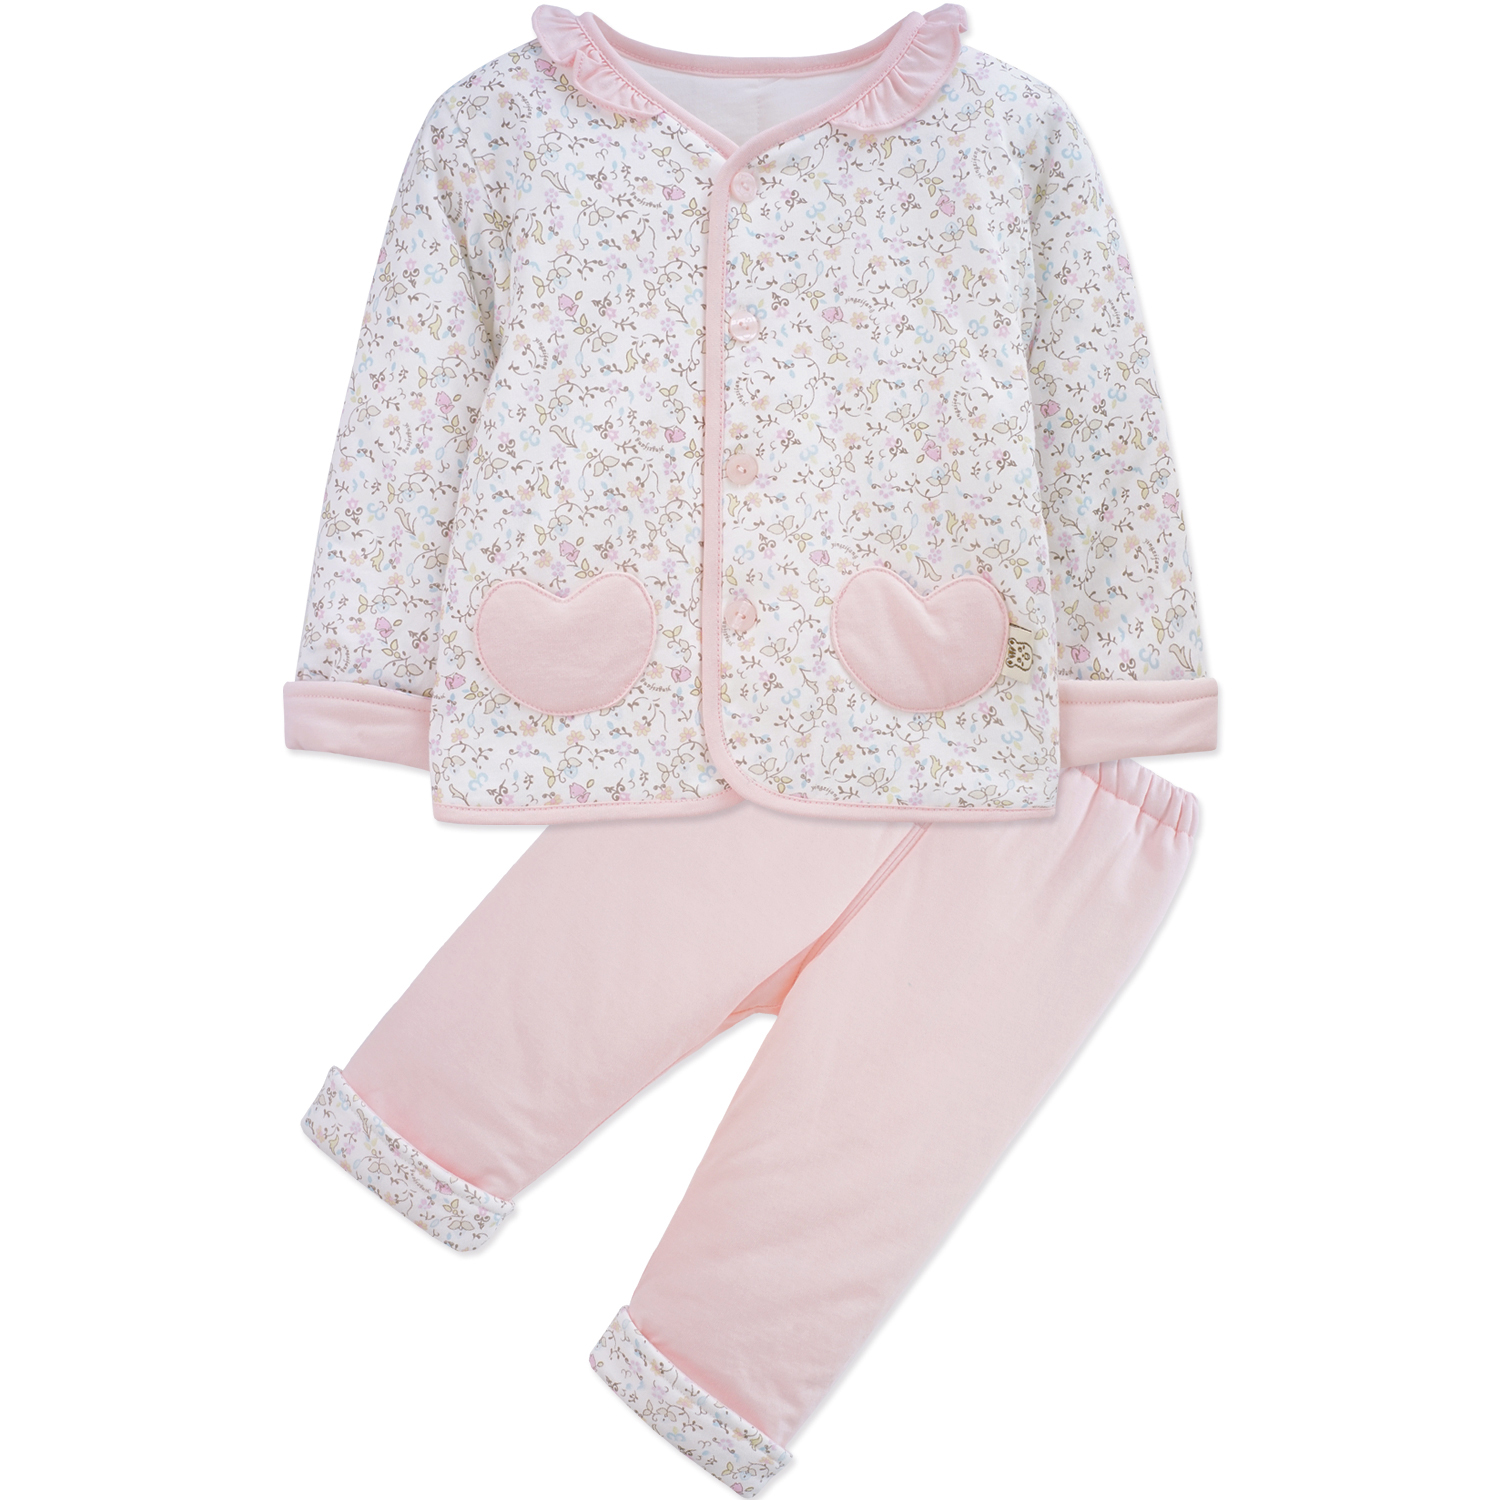 Yingzifang 2017 Baby Girls Clothing Cotton Floral Girls Clothing Set Baby Clothes Long-Sleeved T-Shirt+Pants 2Pcs Clothing Set girls sets 2017 cotton autumn 2pcs t shirt pants suits shirt leggings baby girls clothes children clothing set girl long johns